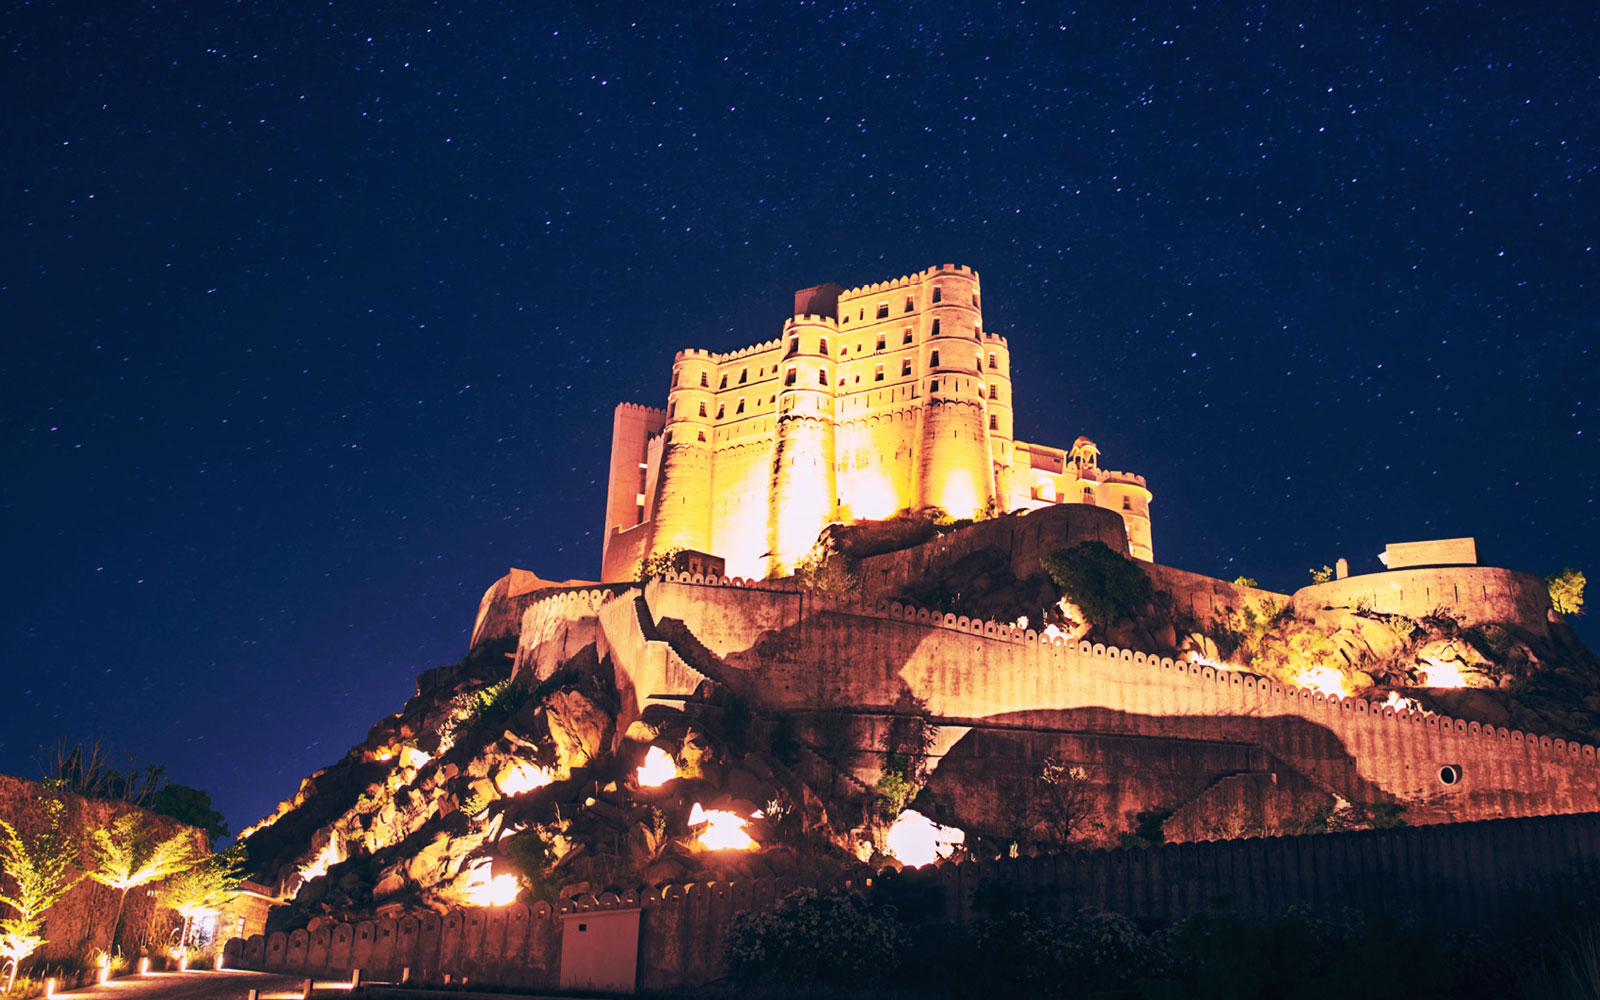 The spectacular Alila Fort, Rajasthan could be your conference hotel | Image © Travel + Leisure India